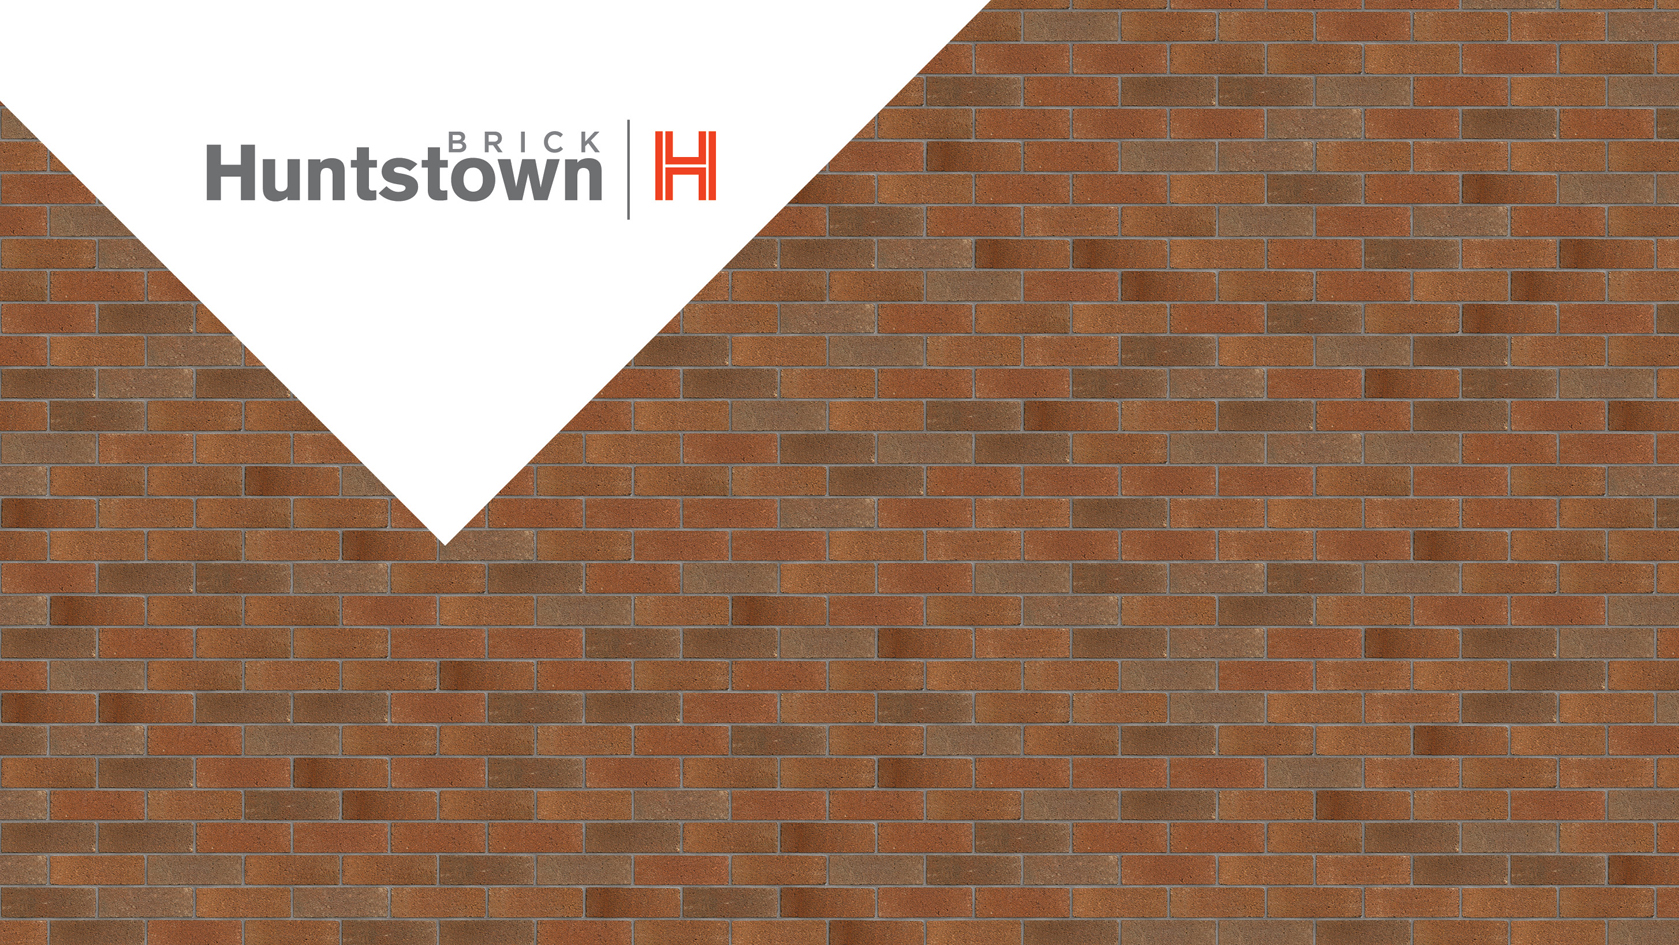 Huntstown Brick